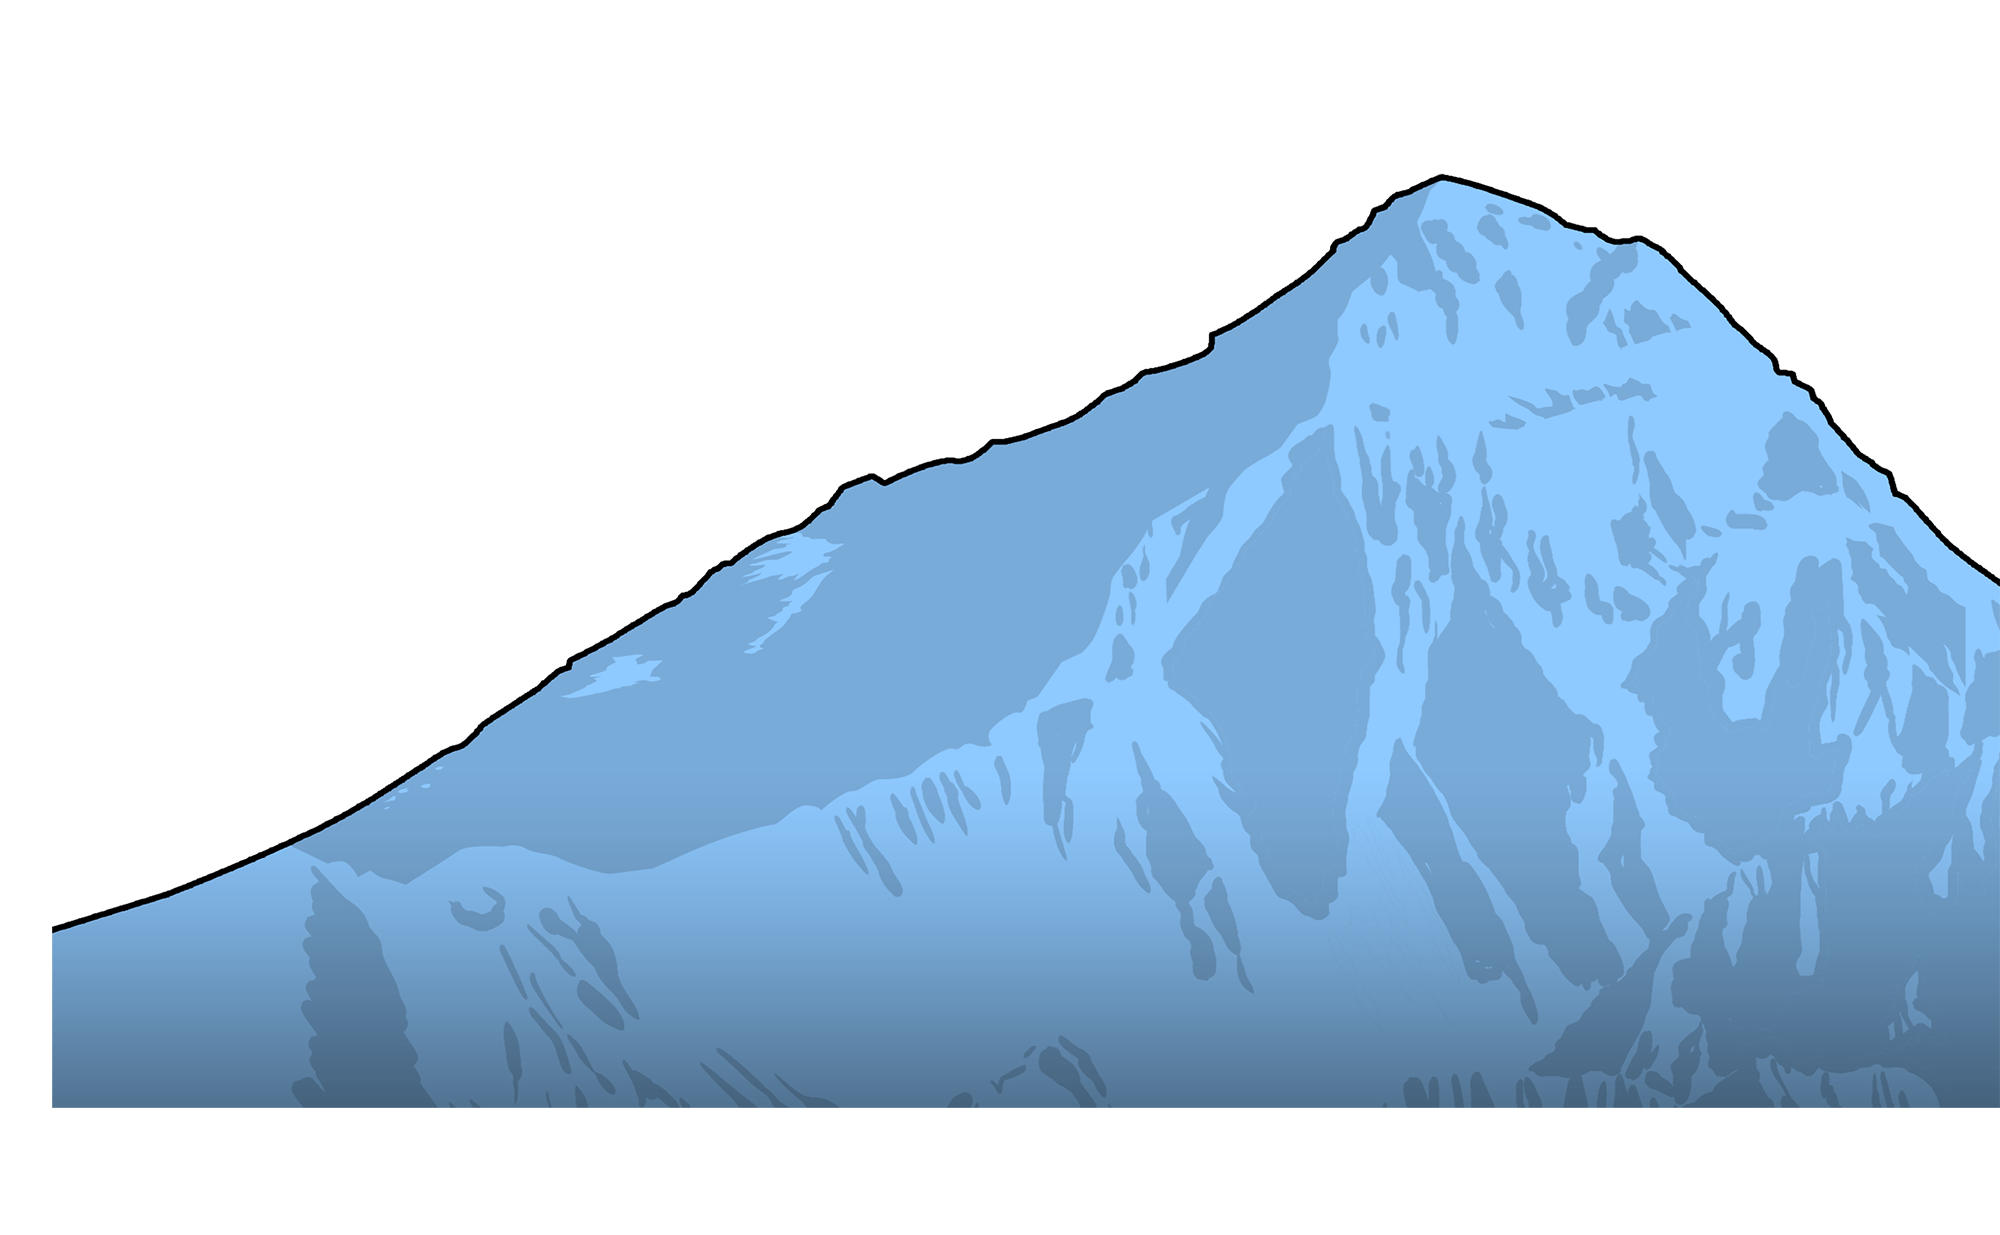 Clipart mountains mountaineering. The deadly why more